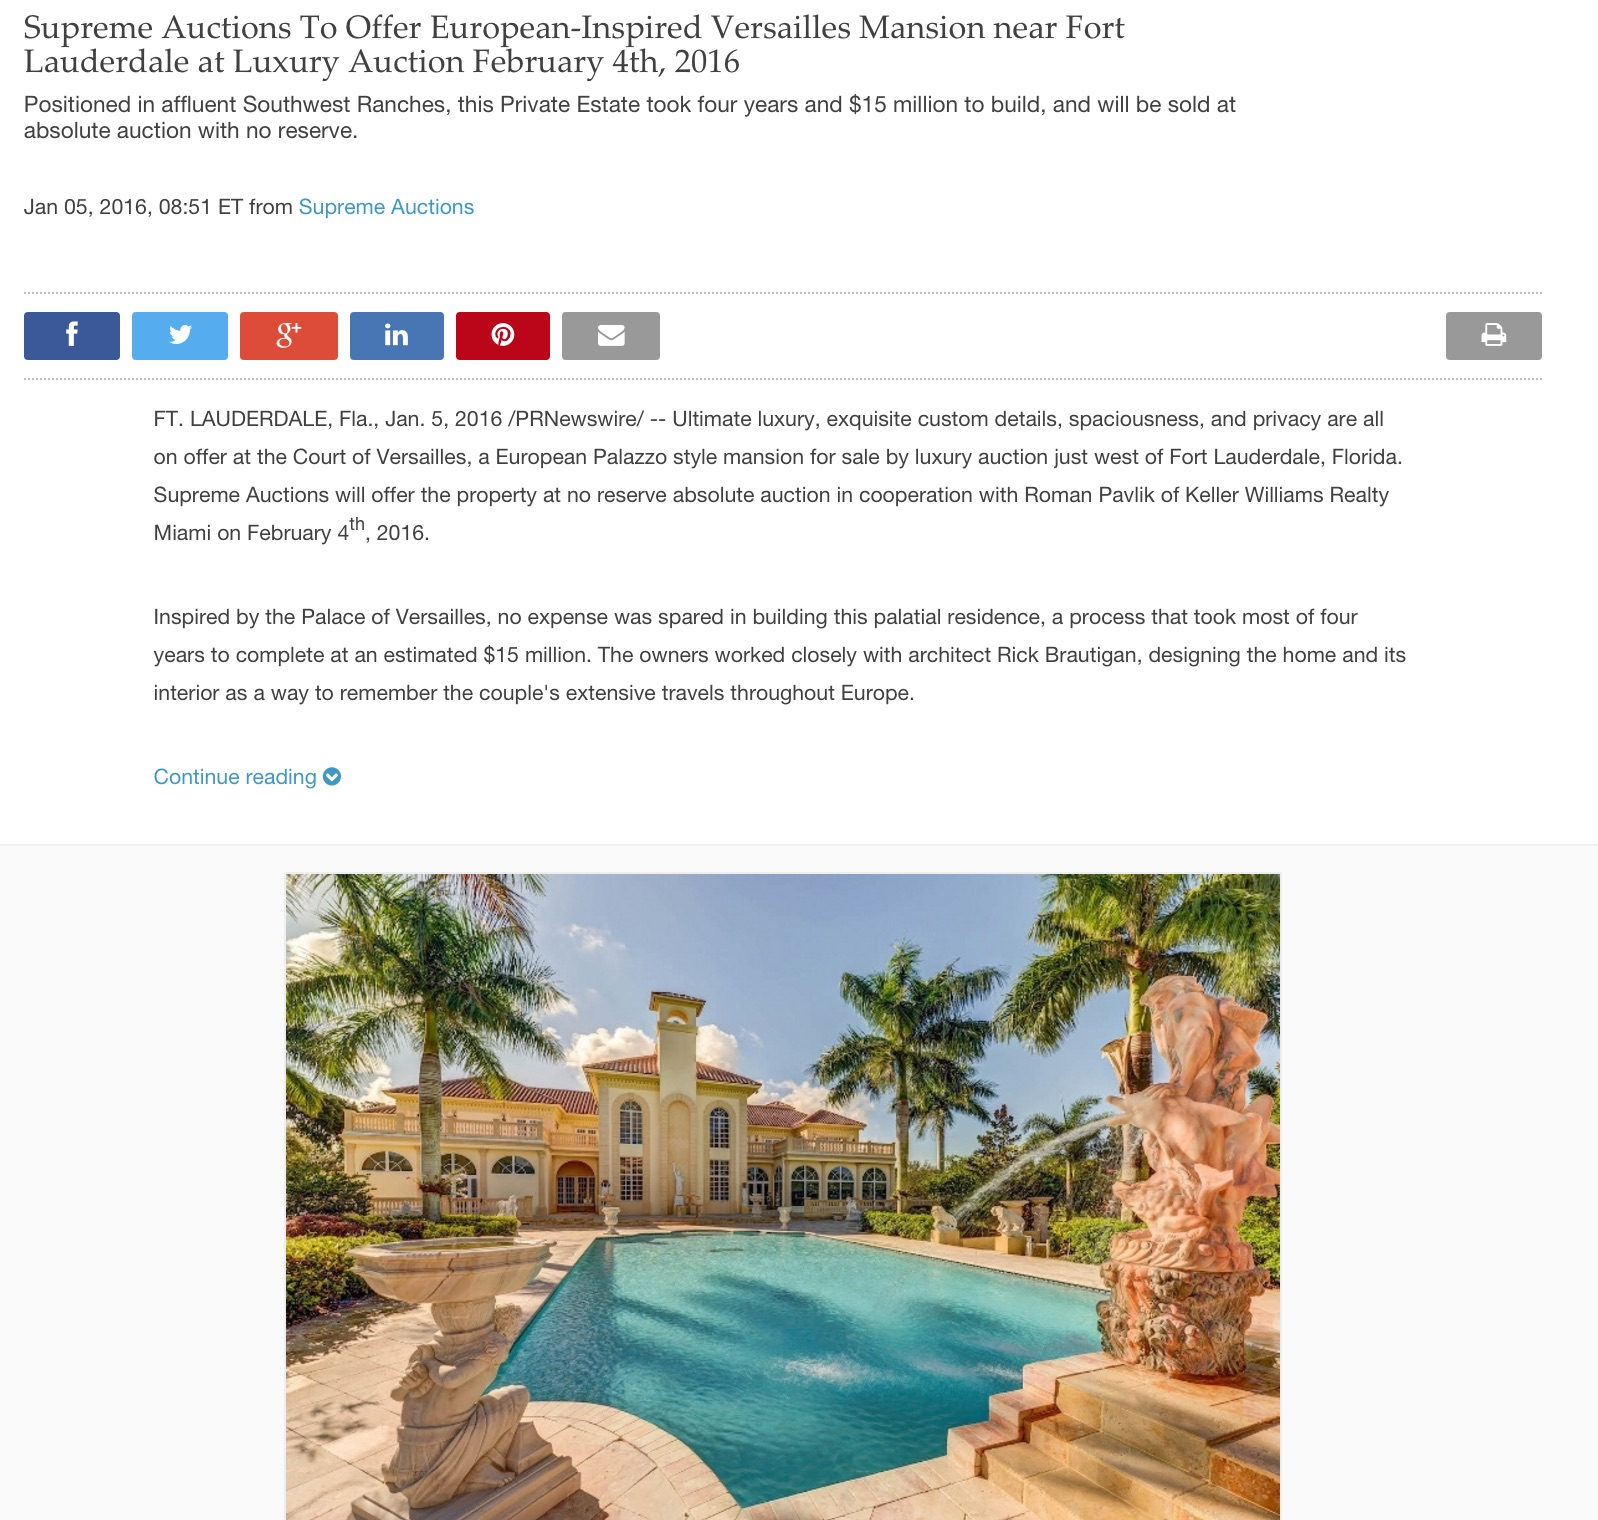 Luxury Equestrian Property for Sale in Florida